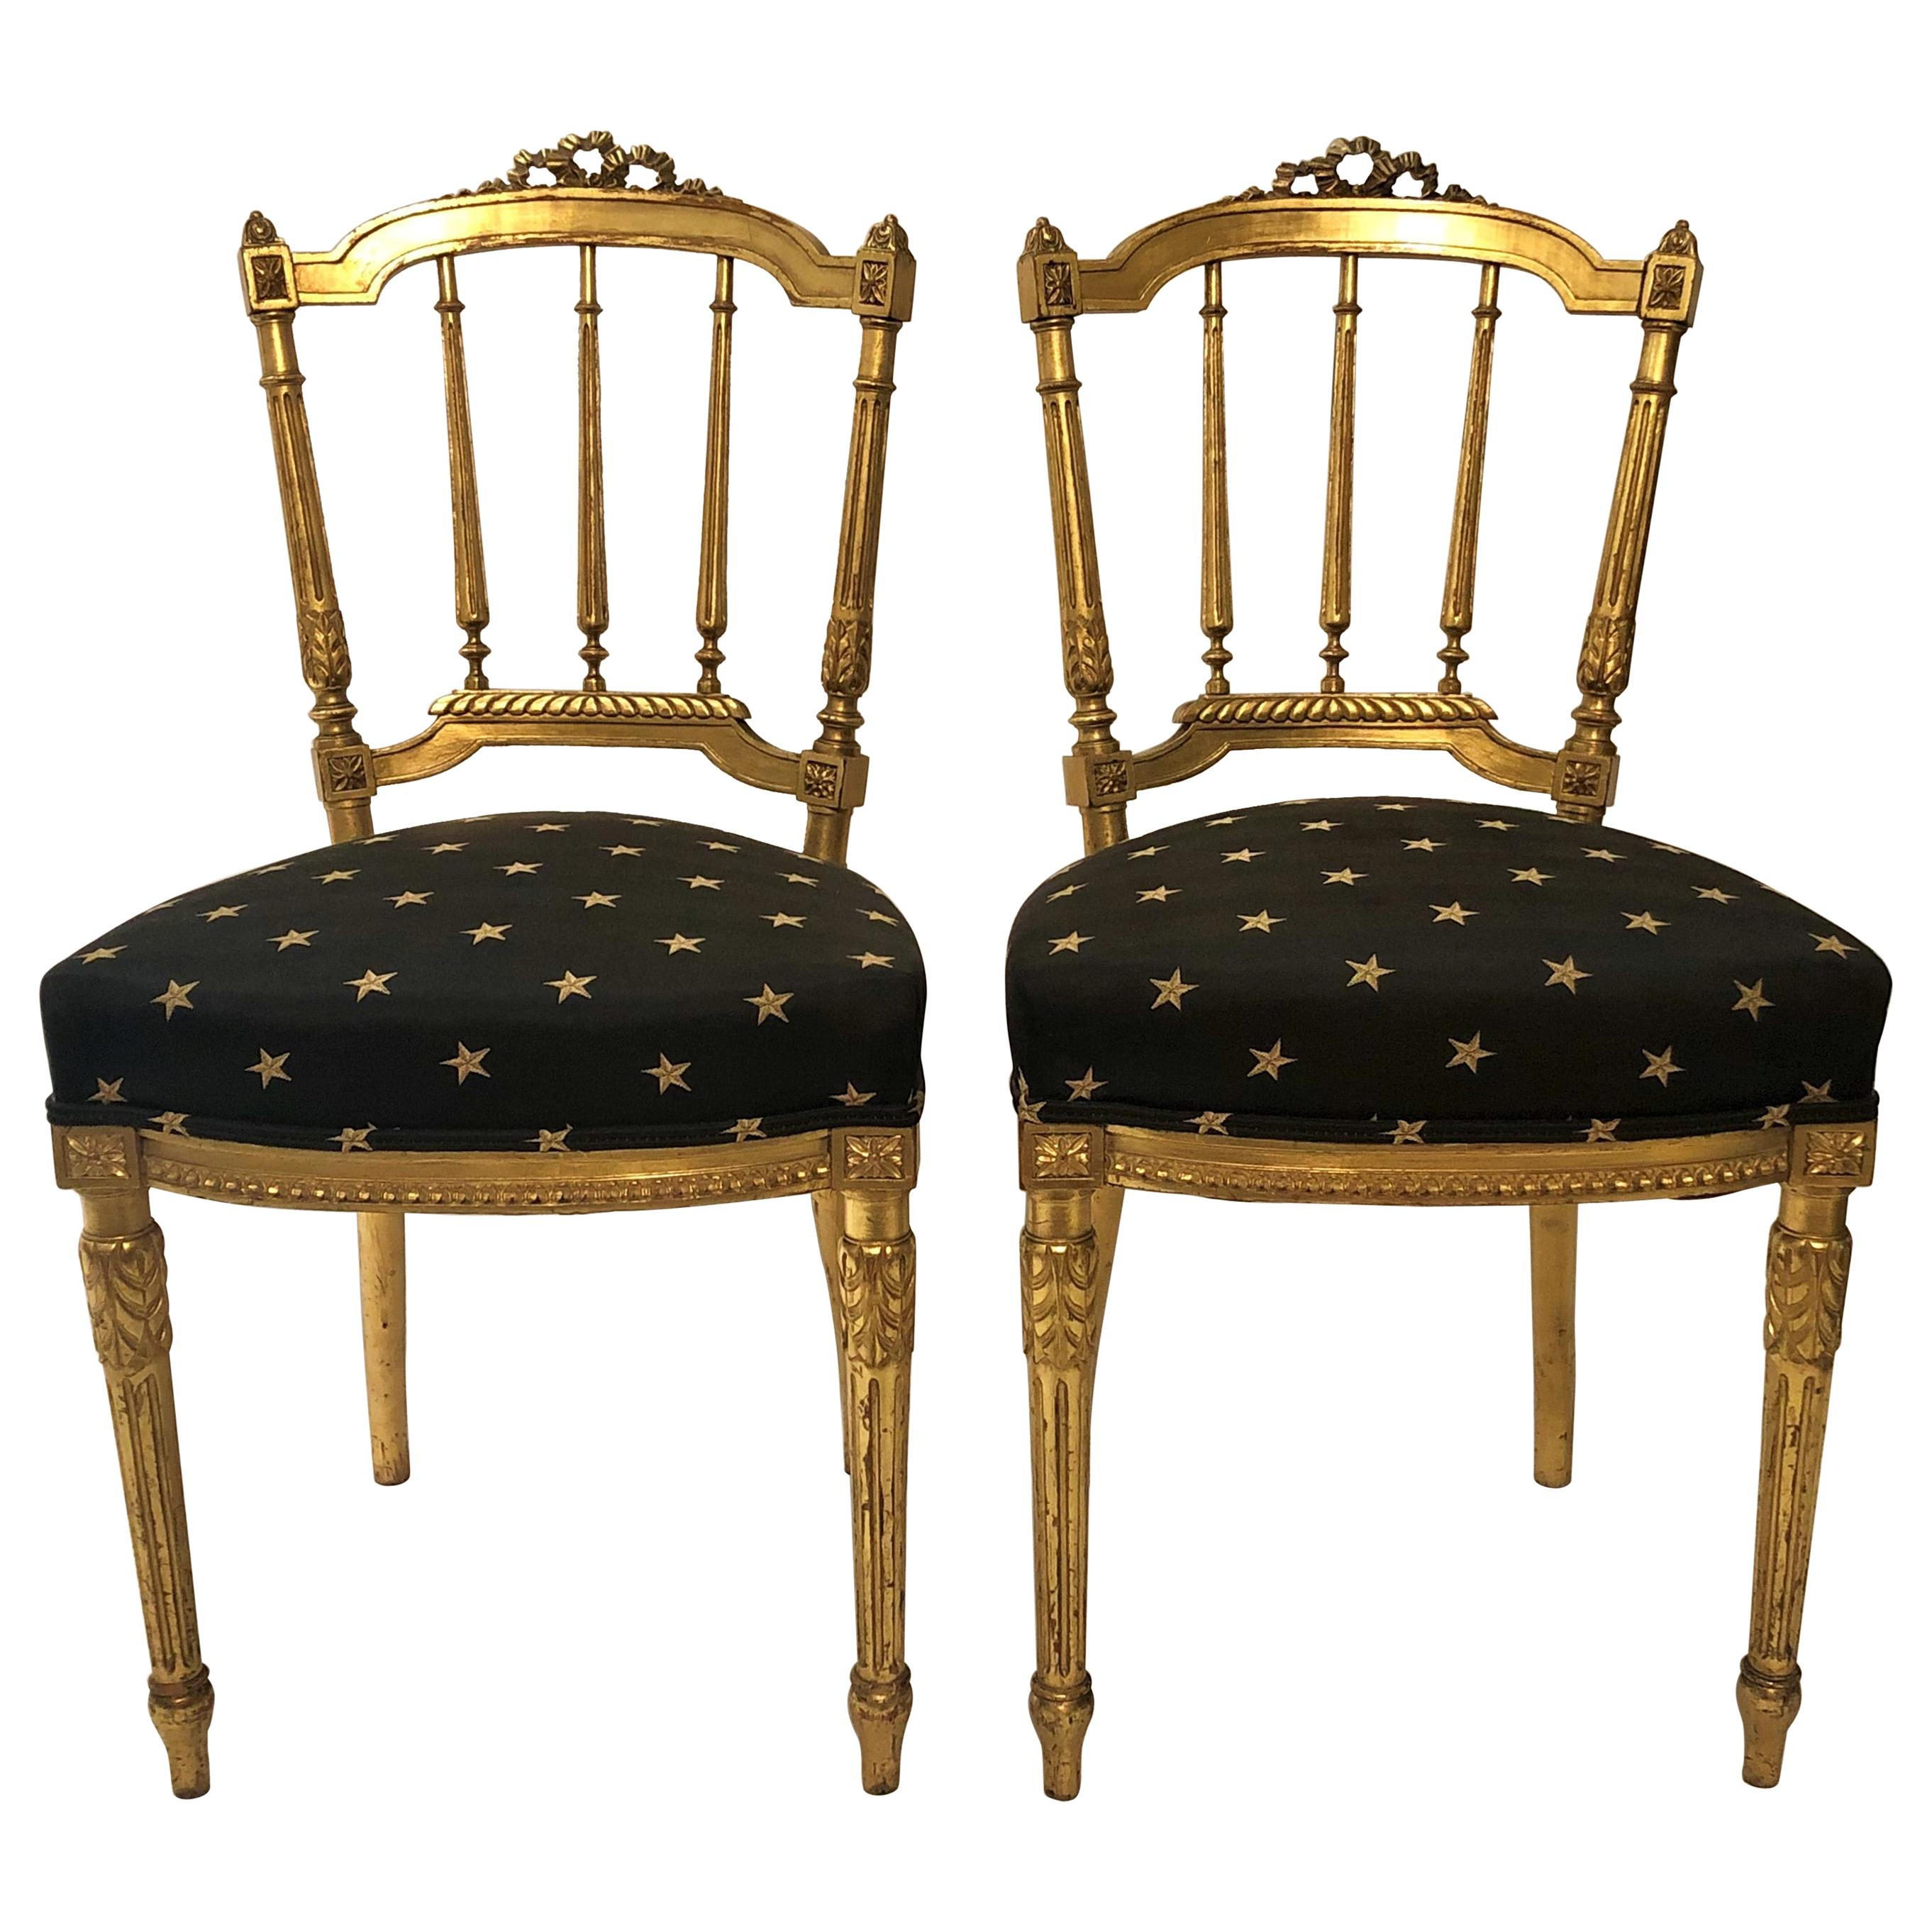 Pair of Antique French Louis XVI Style Gold Side Chairs, circa 1880